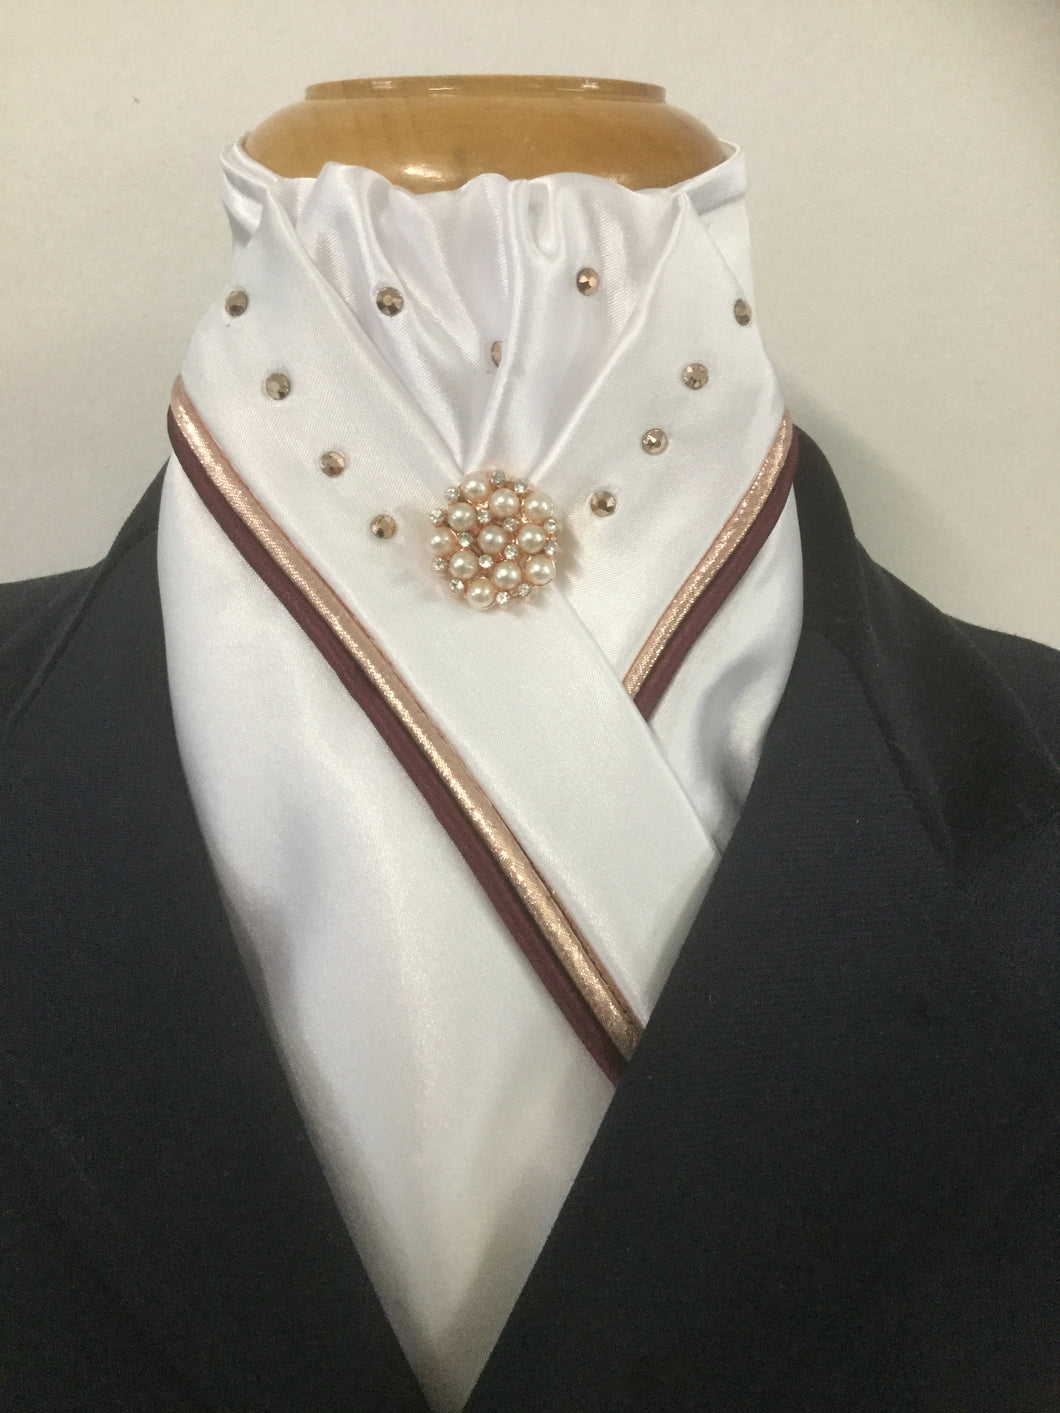 HHD White or Ivory Satin Custom Stock Tie Rose Gold & Burgundy with Swarovski Elements